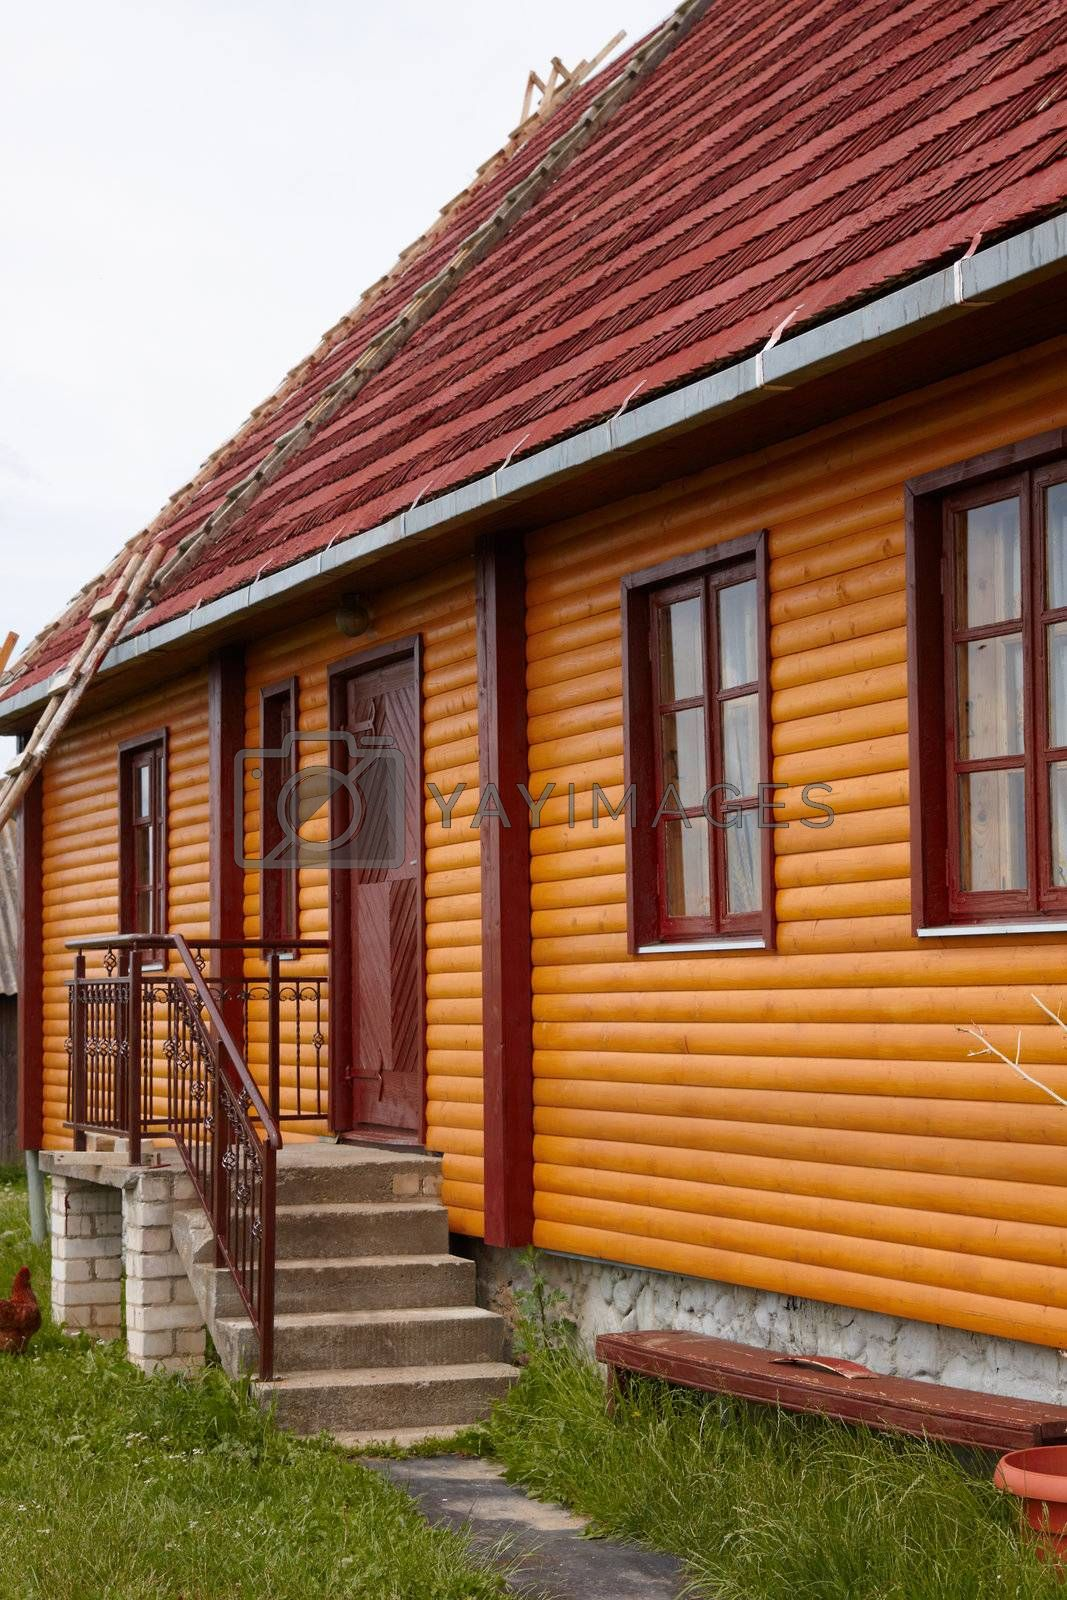 Fragment of restored wooden house in Lithuania